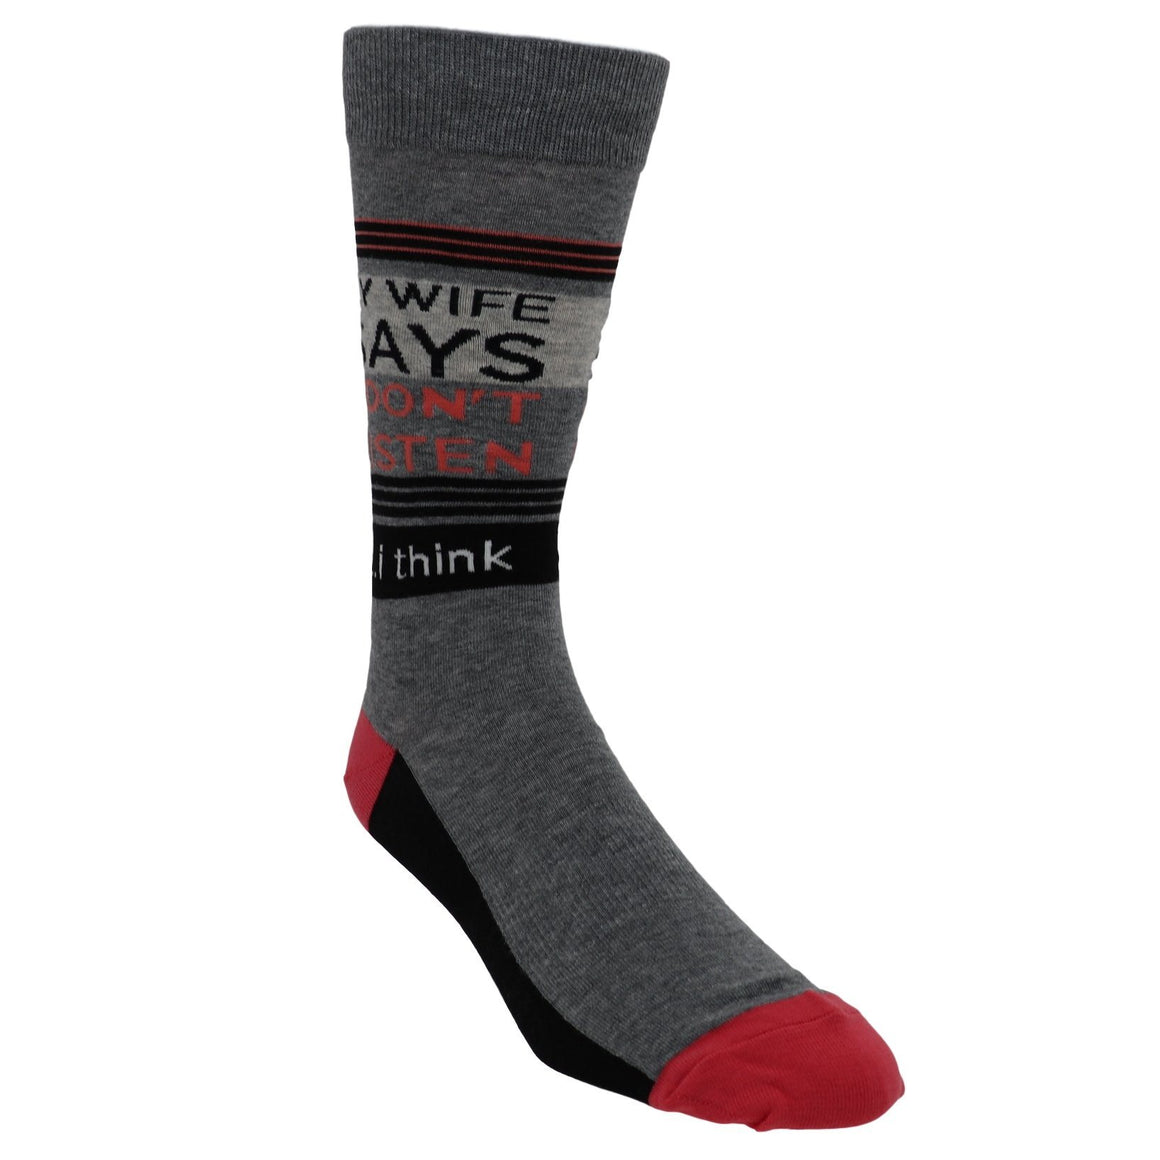 My Wife Says I Don't Listen...I Think Men's Socks by K.Bell - The Sock Spot